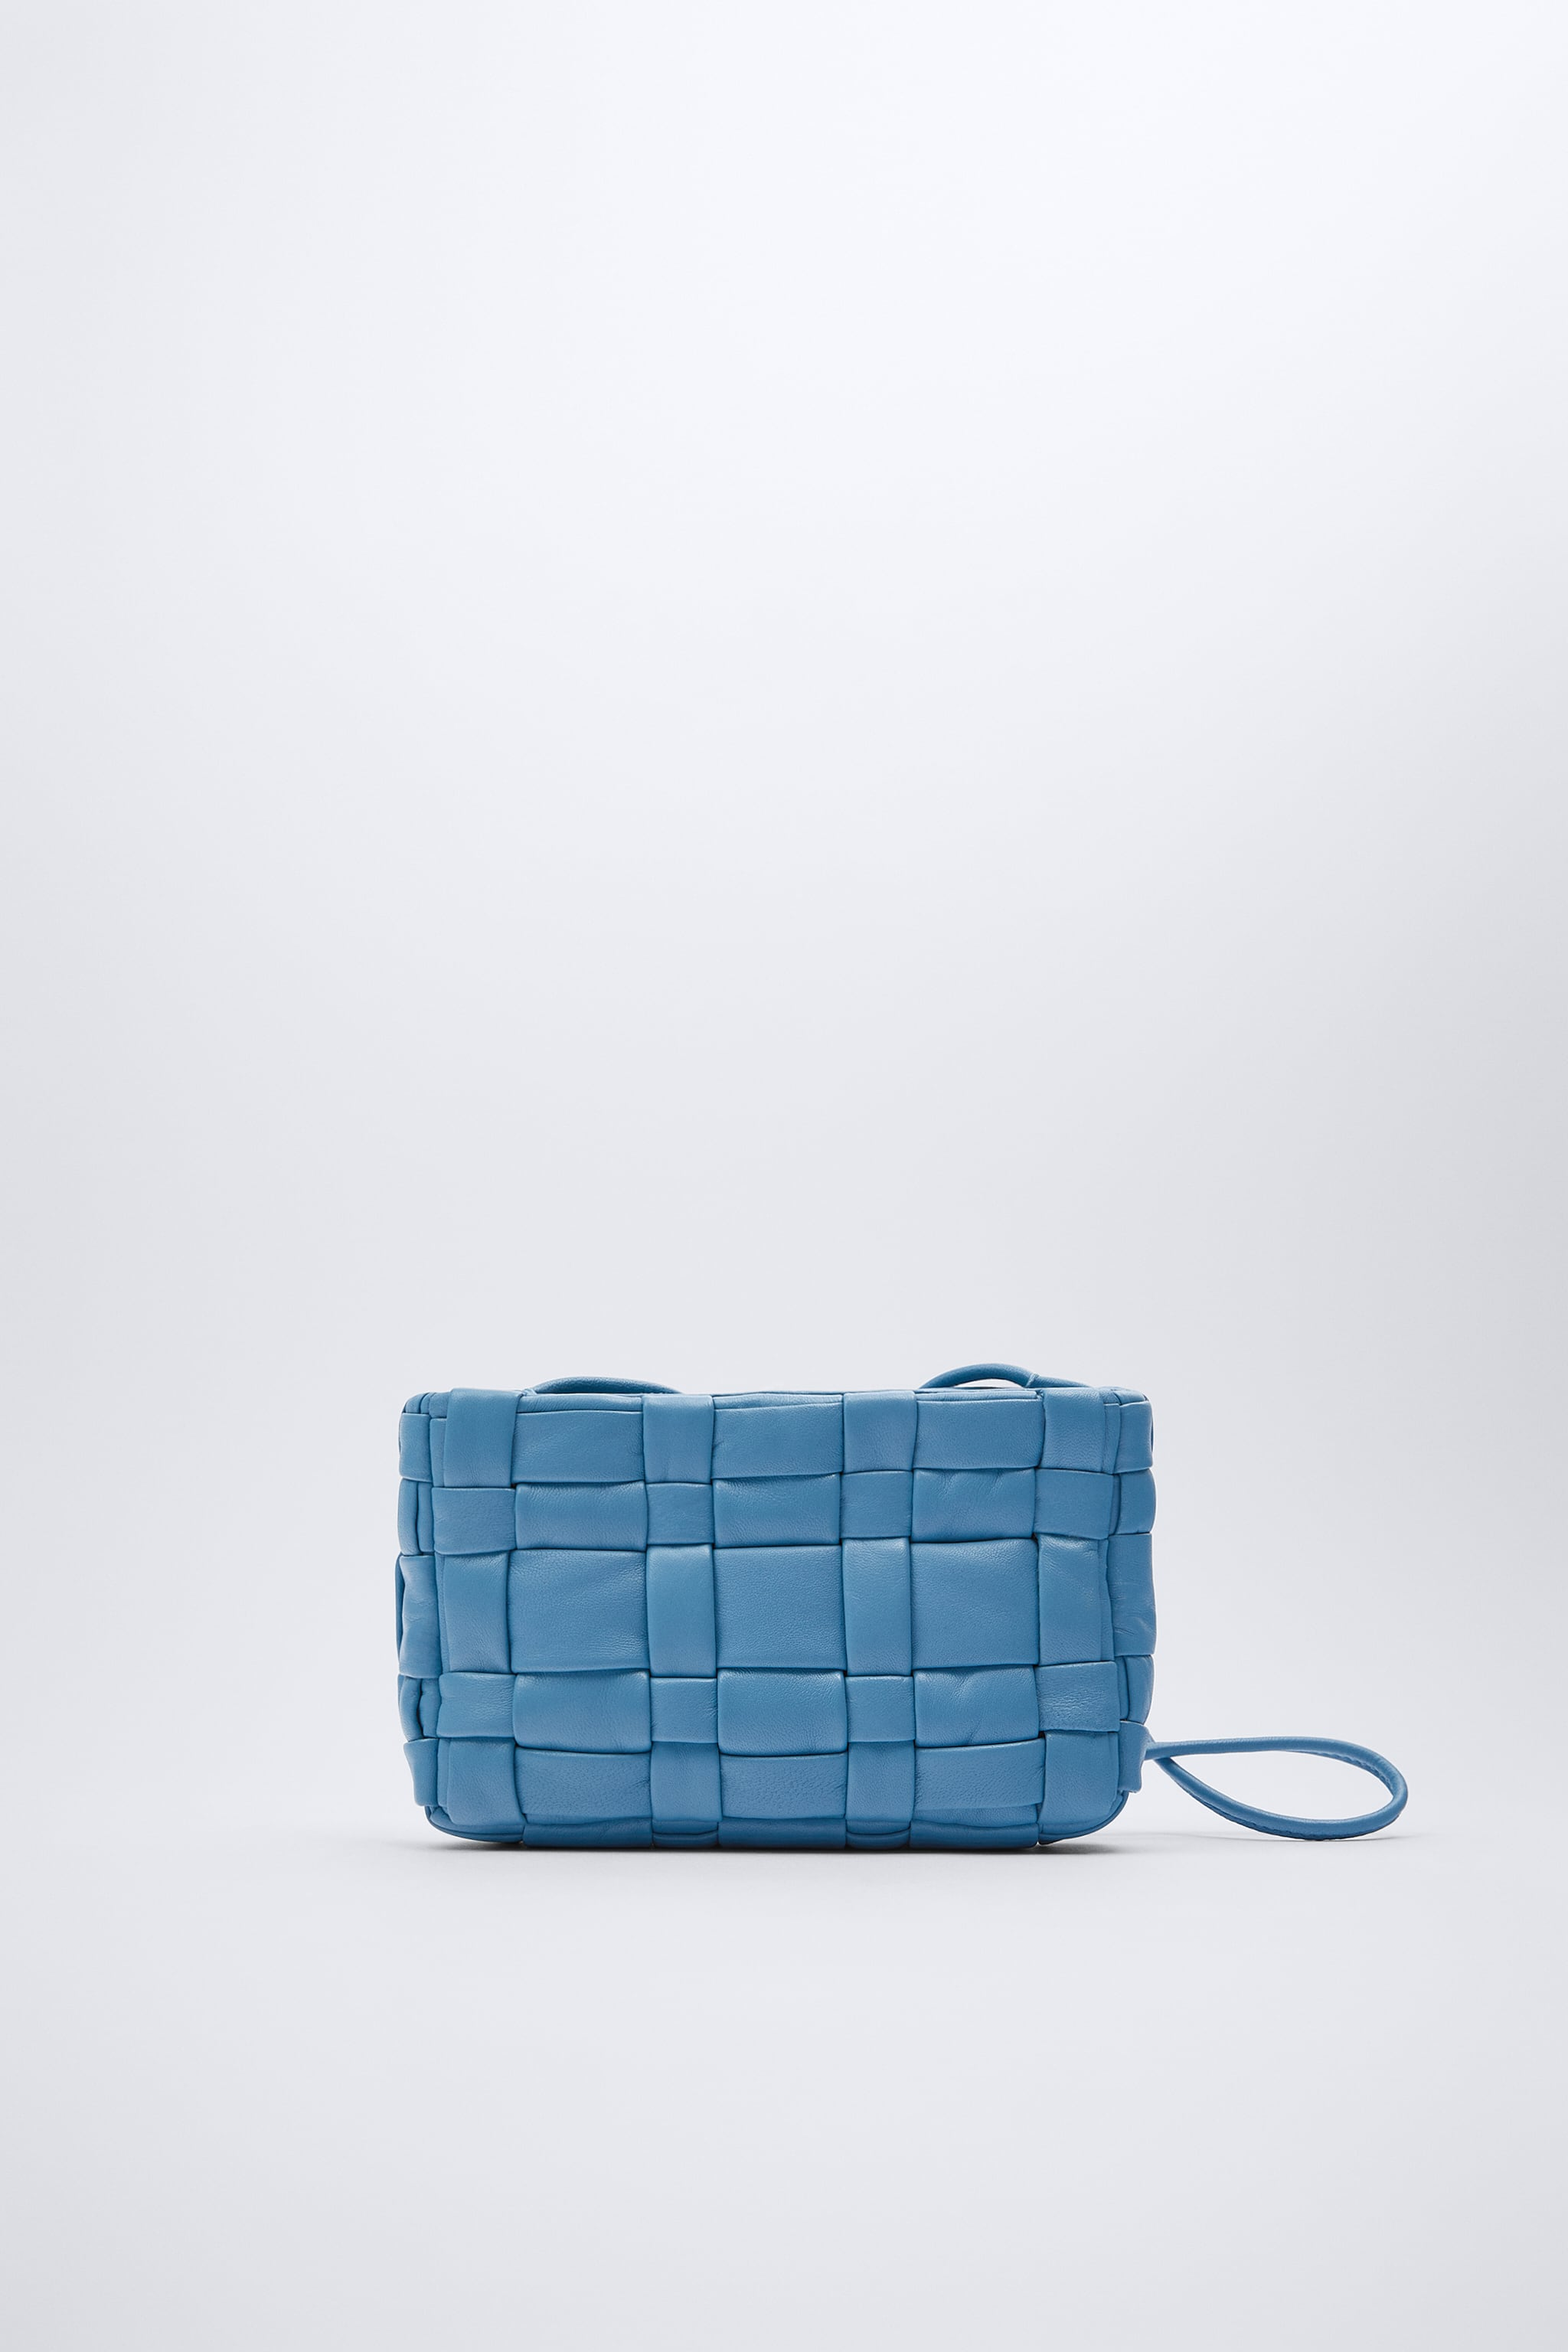 Zara WOVEN QUILTED LEATHER CROSSBODY BAG